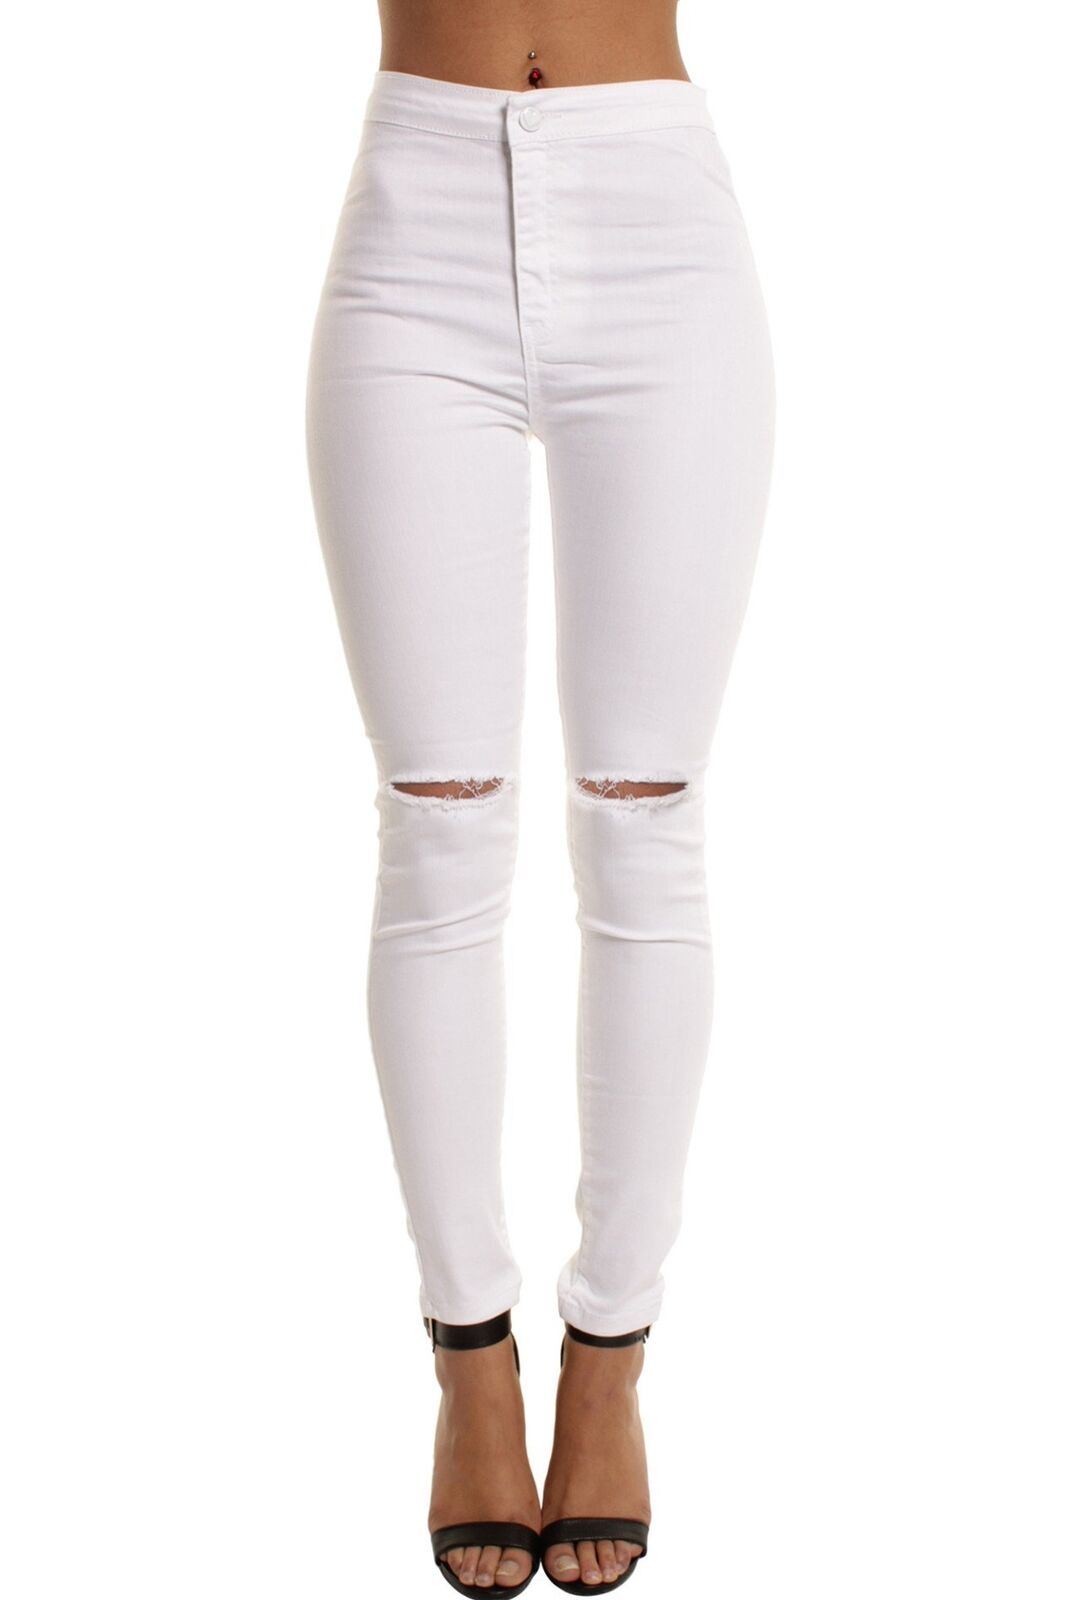 WOMENs LADIES HIGH WAISTED Denim SKINNY JEANS JEGGINGS Stretch Long Pants M 6-22